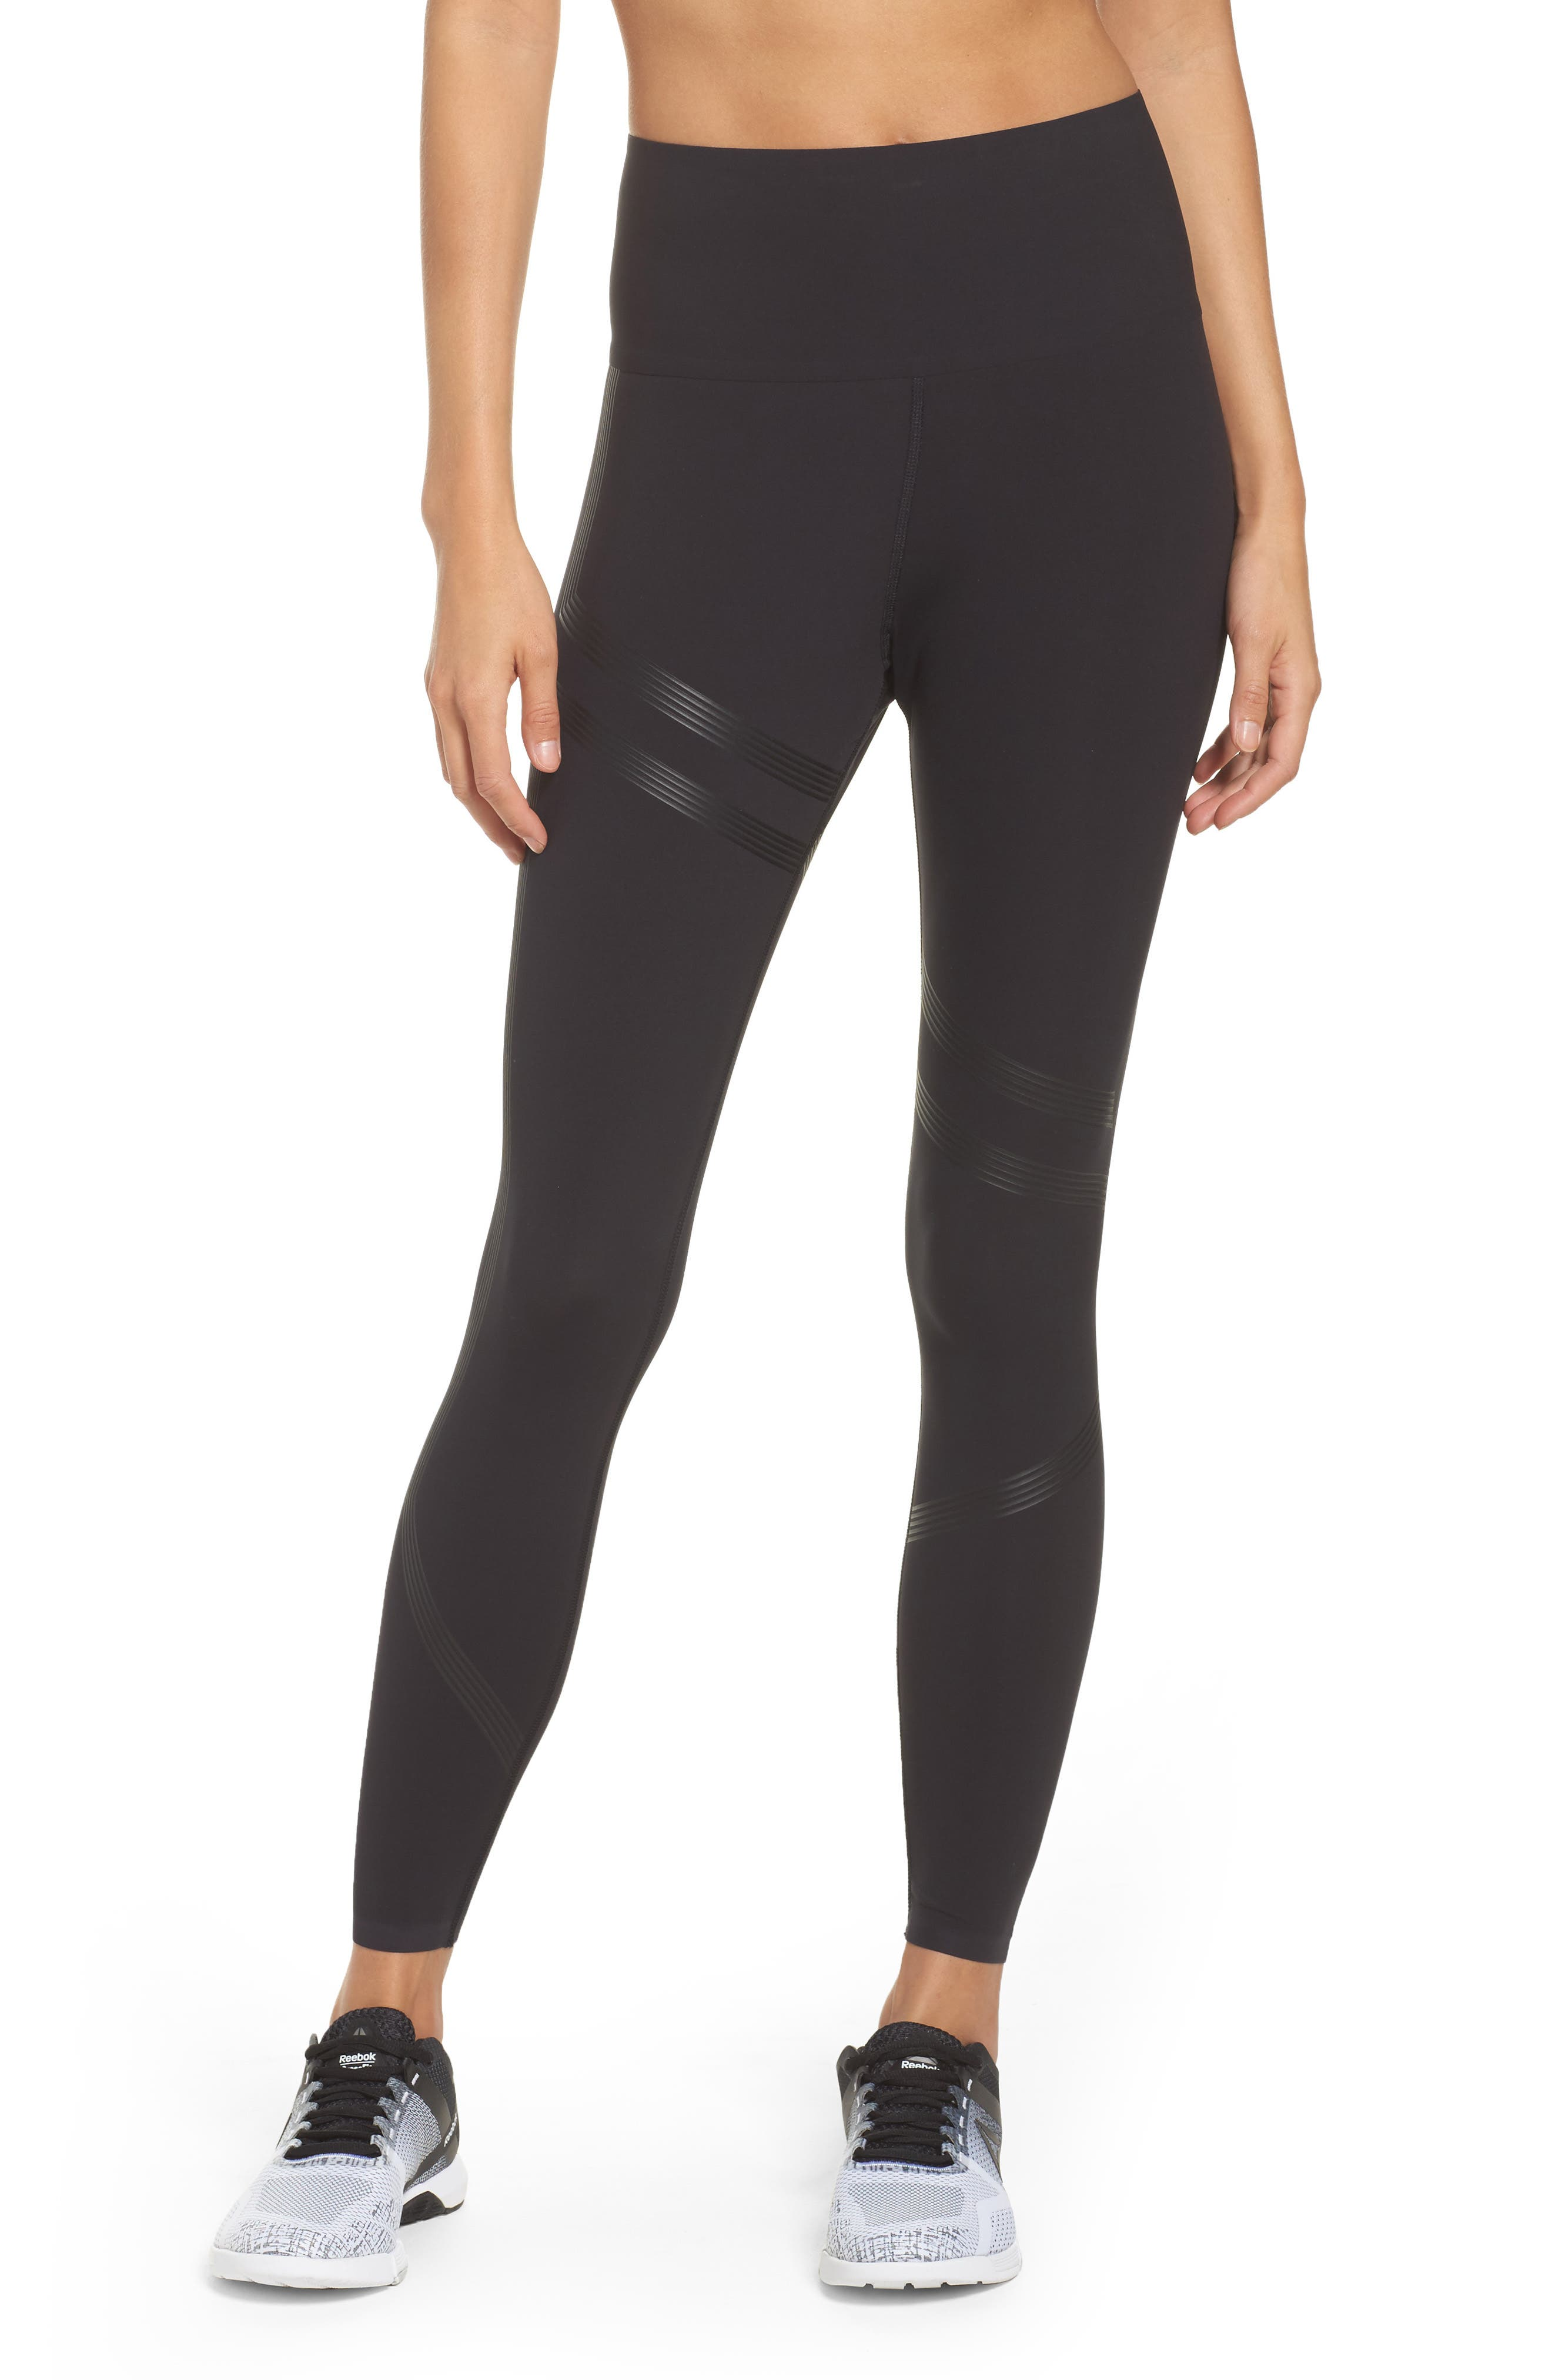 Linear High Rise Performance Tights,                         Main,                         color, Black